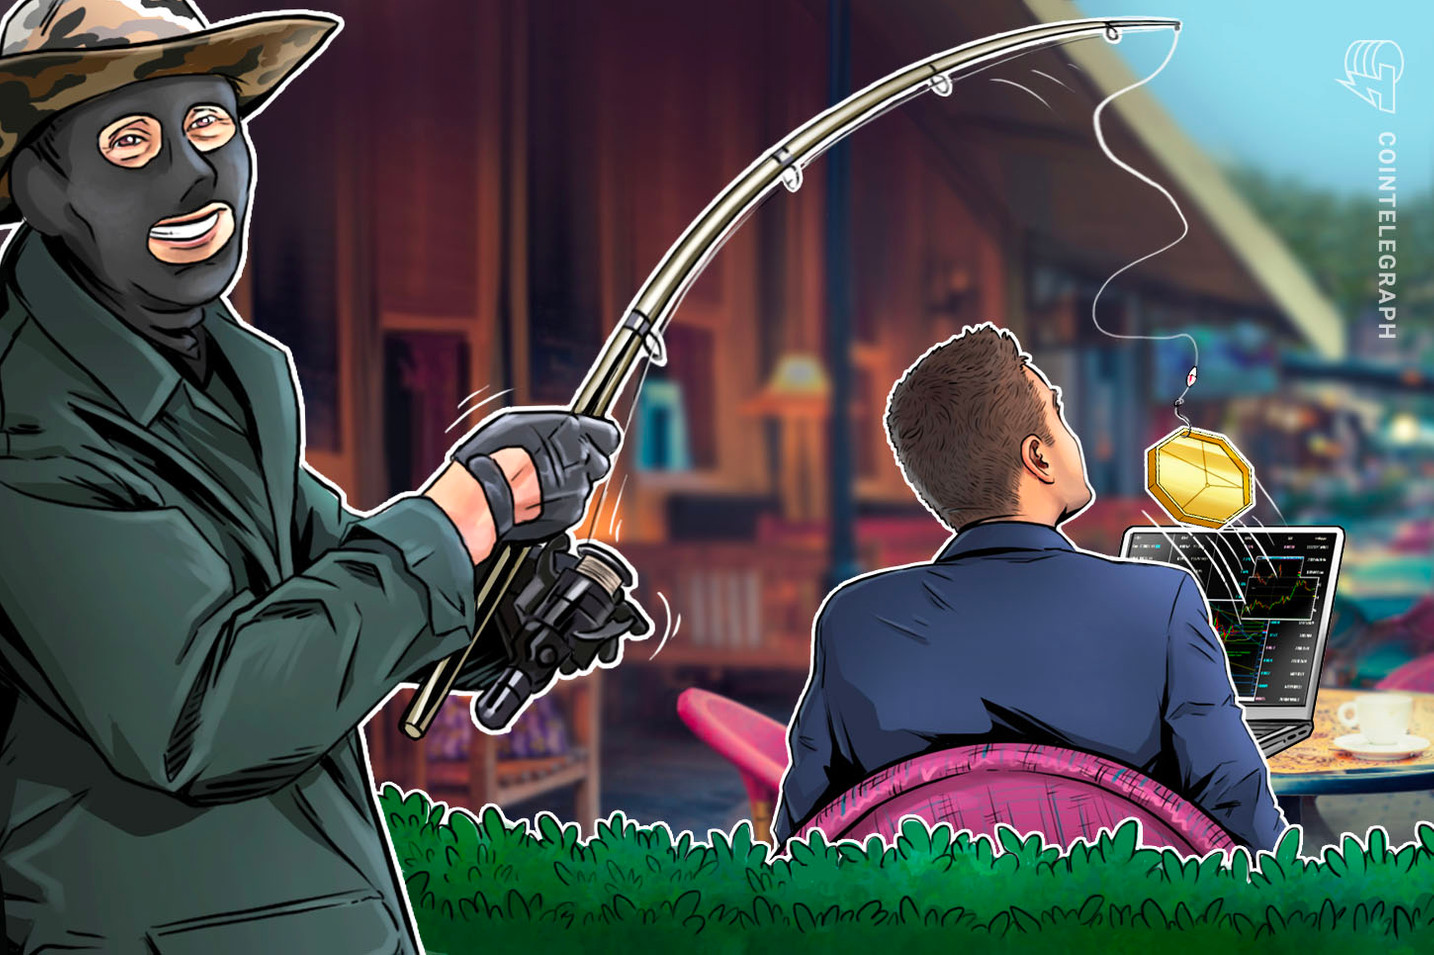 LocalBitcoins Resumes Outgoing Transactions After Warnings of Phishing Link on Forum